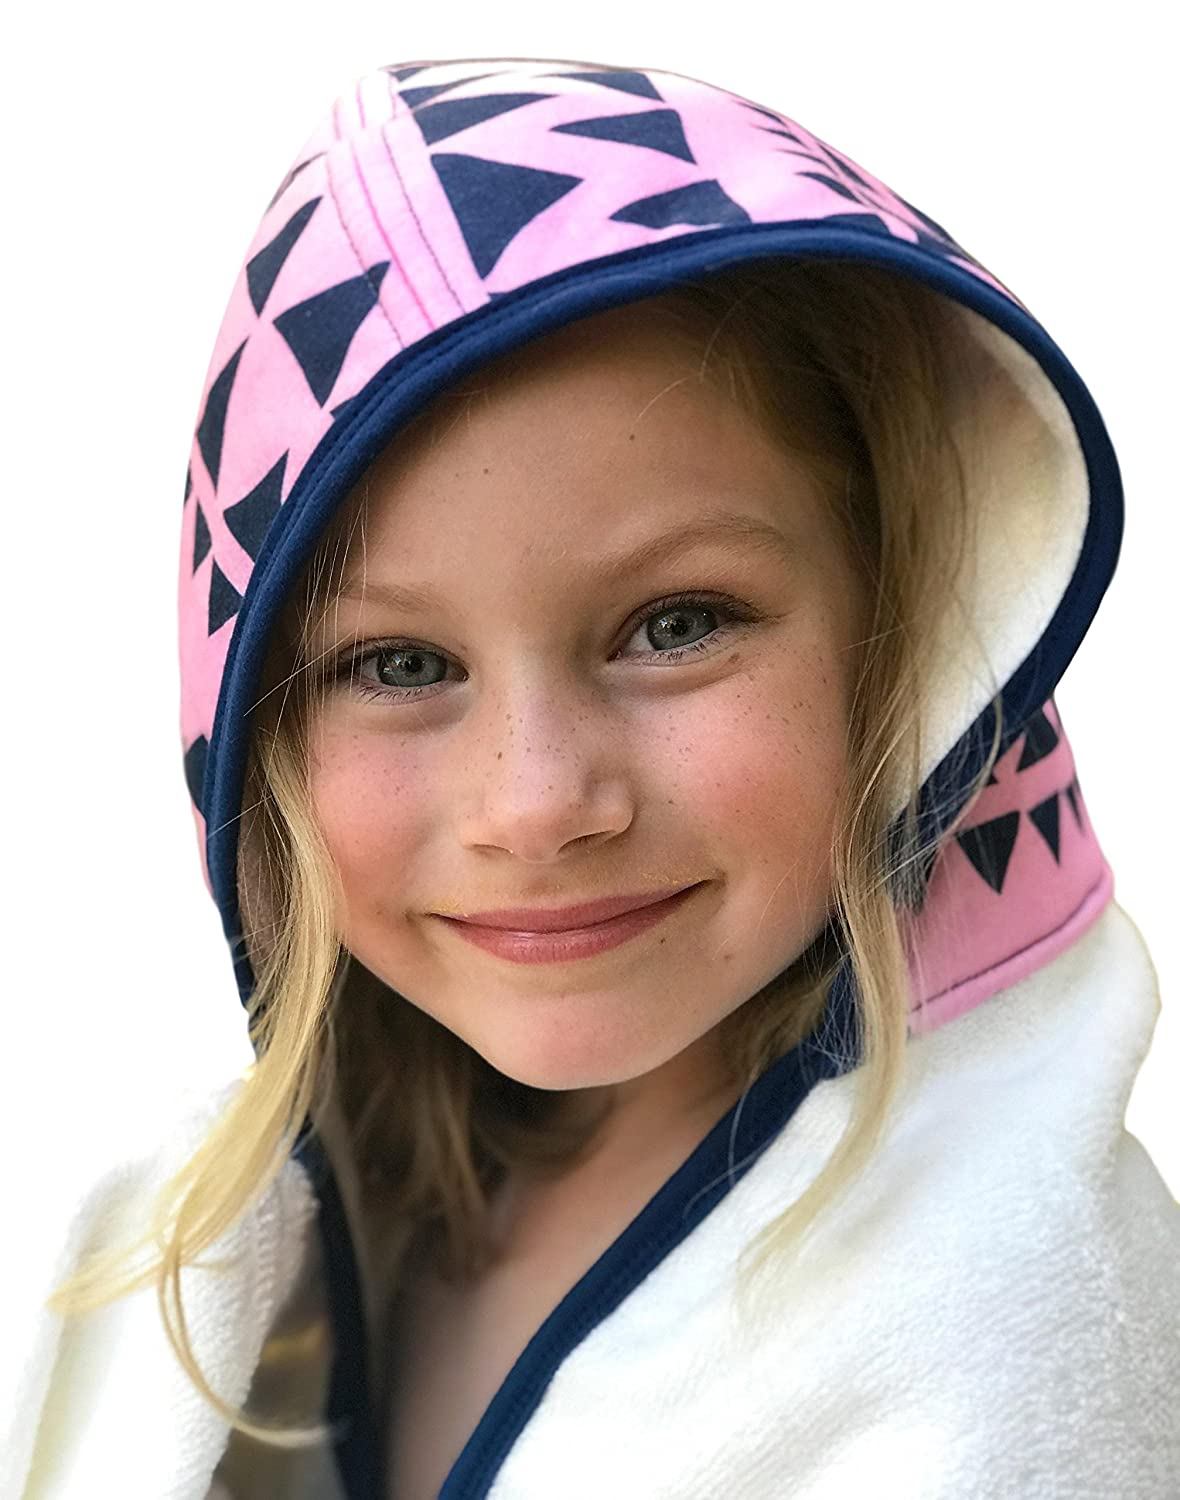 Toddler to Kids Hooded Towel - Extra Soft & Thick 500GSM Bamboo Terry | Hypoallergenic & Antibacterial |Oversized with 2 Layer Hood for Warmer Girls & Boys After Bath, Beach, Pool, or Swim Land of the Wee